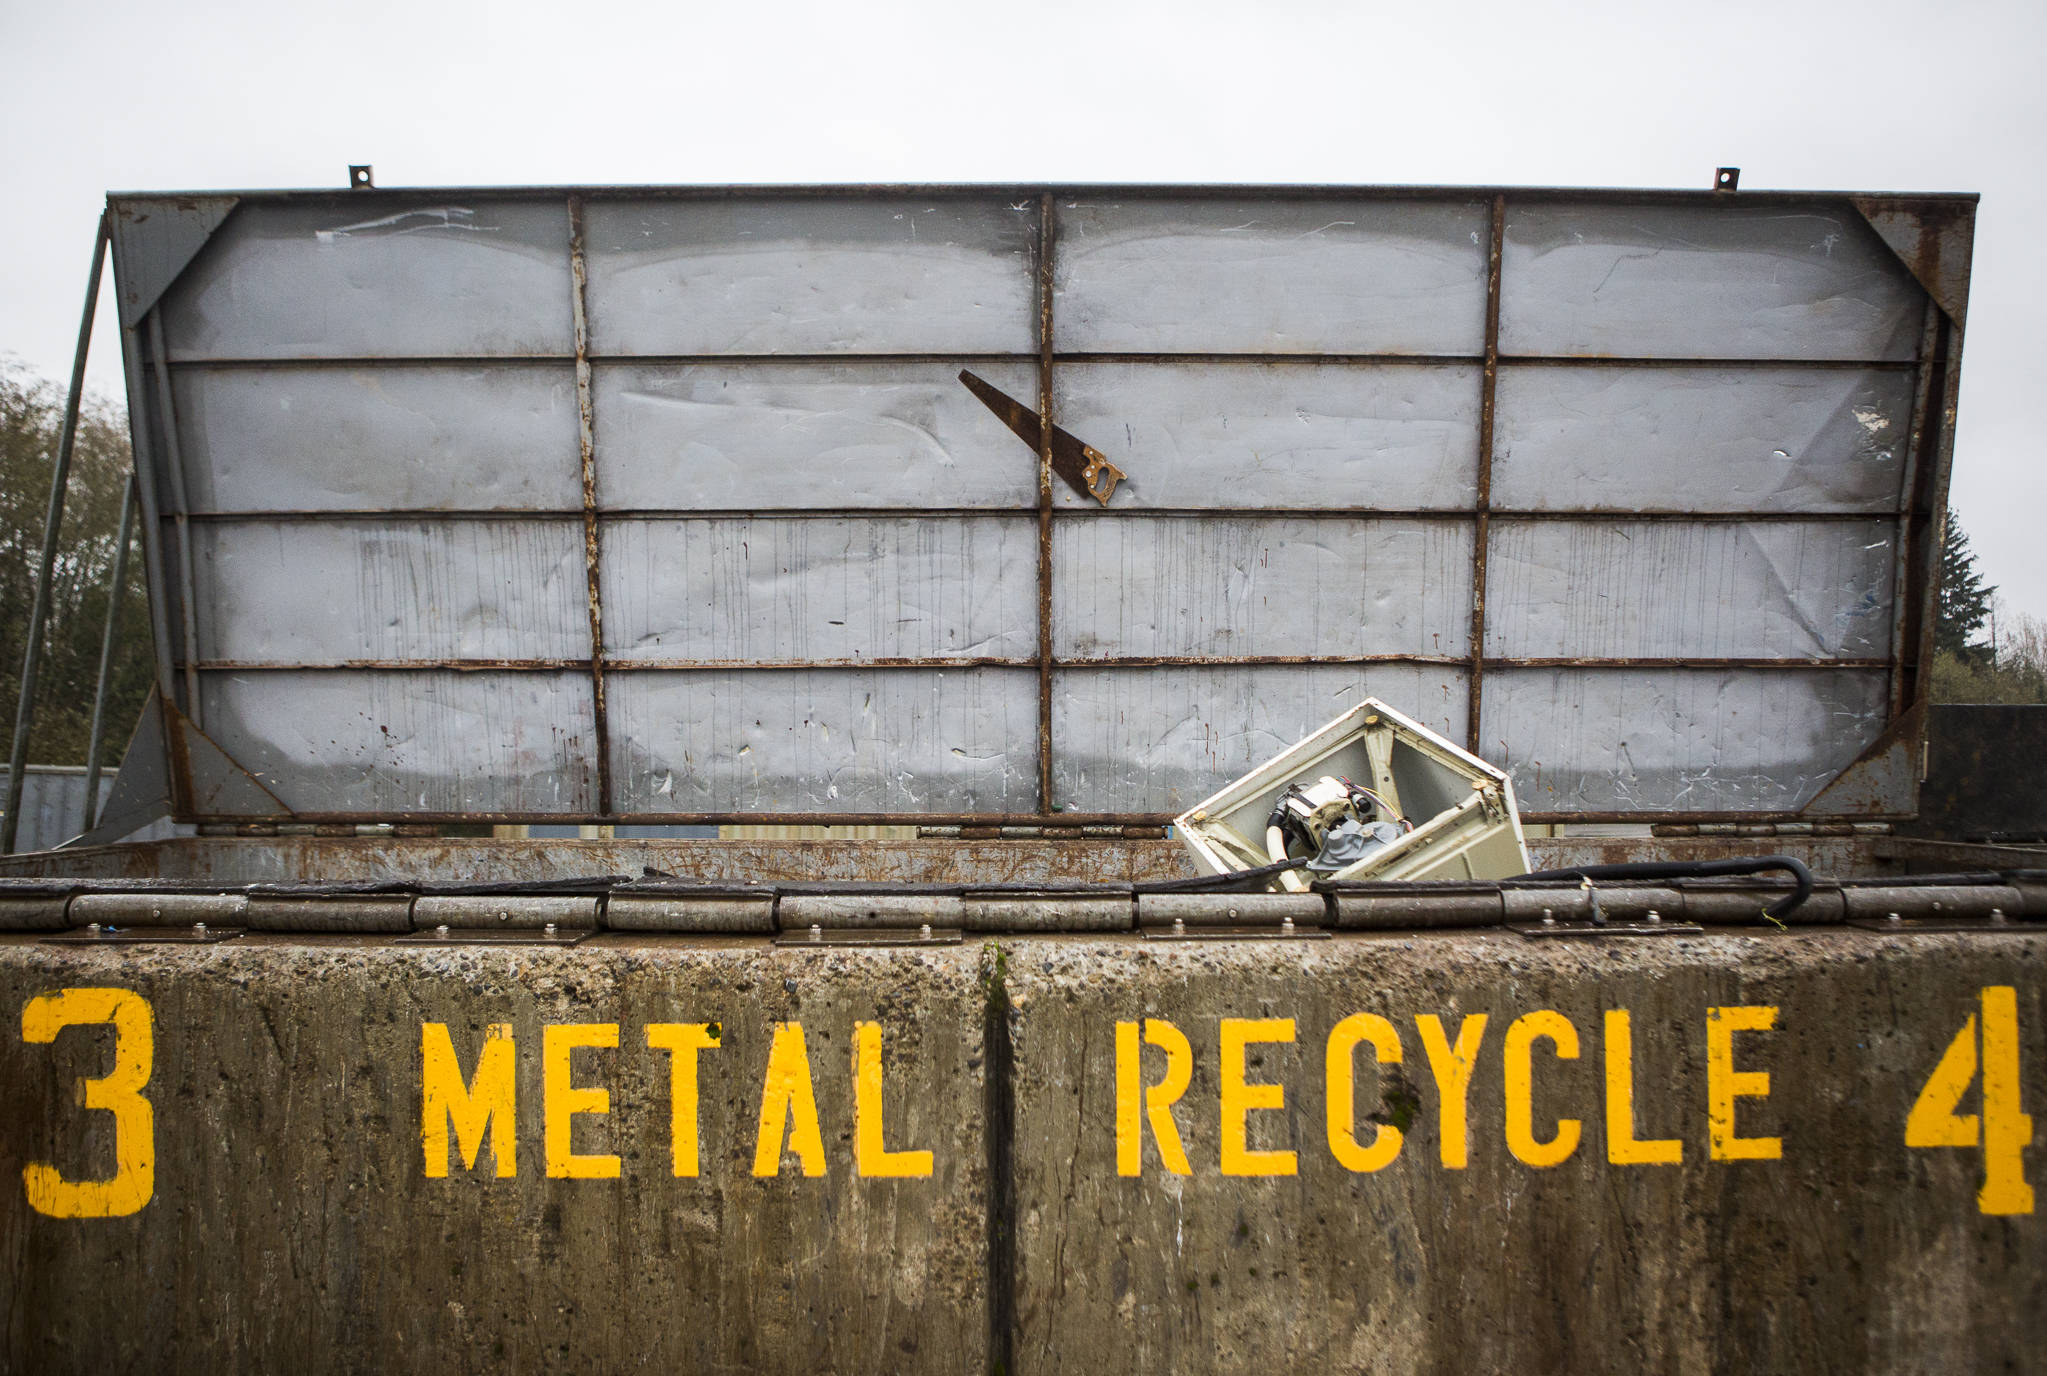 Metal appliances and other metal items fill a recycling container at the Airport Road Recycling & Transfer Station on Nov. 24 in Everett. Photo by Olivia Vanni/The Herald (Everett)